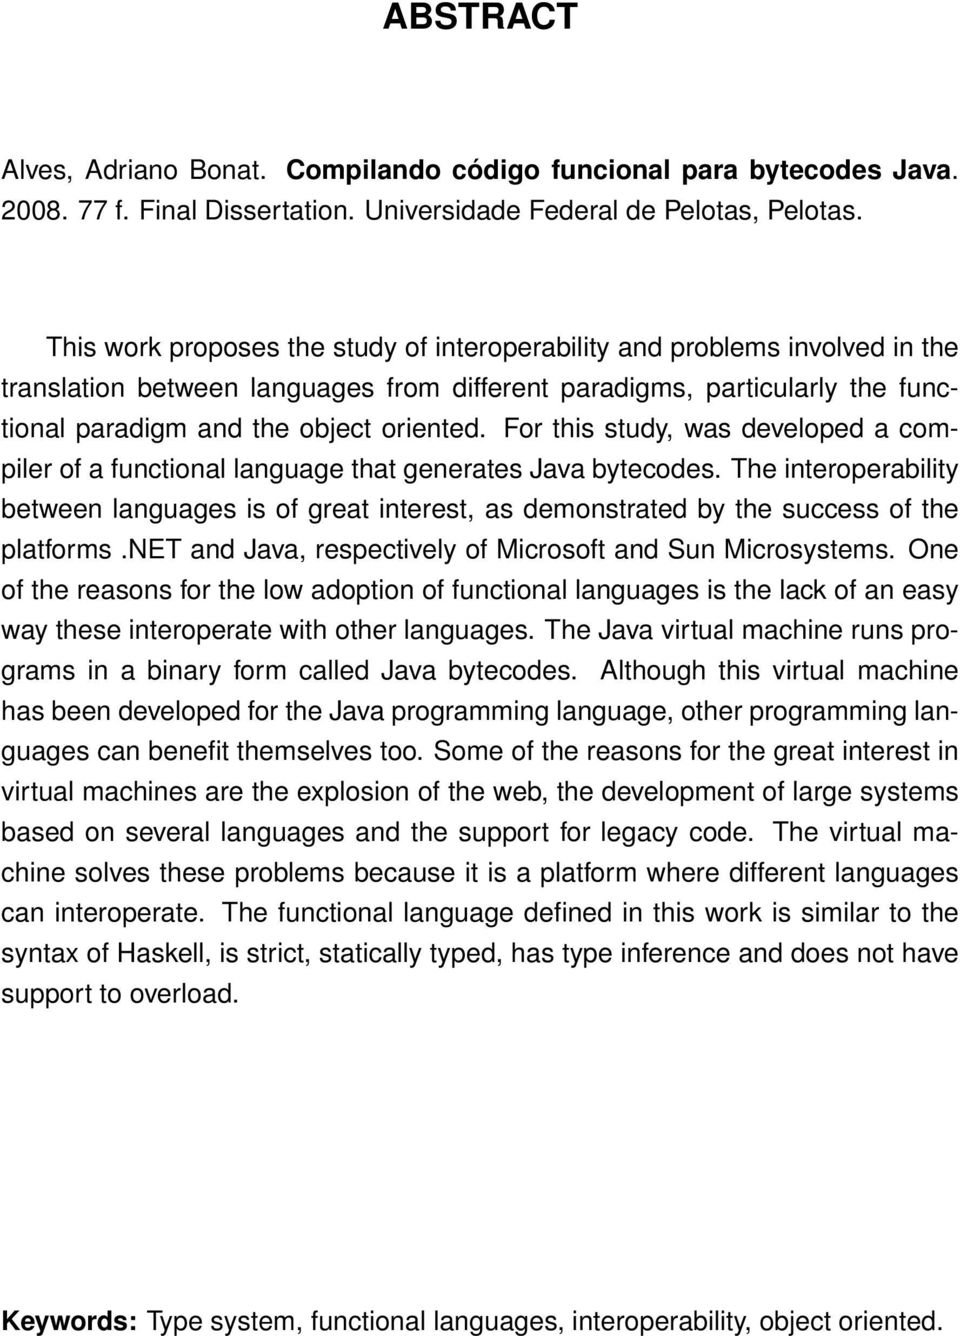 For this study, was developed a compiler of a functional language that generates Java bytecodes.